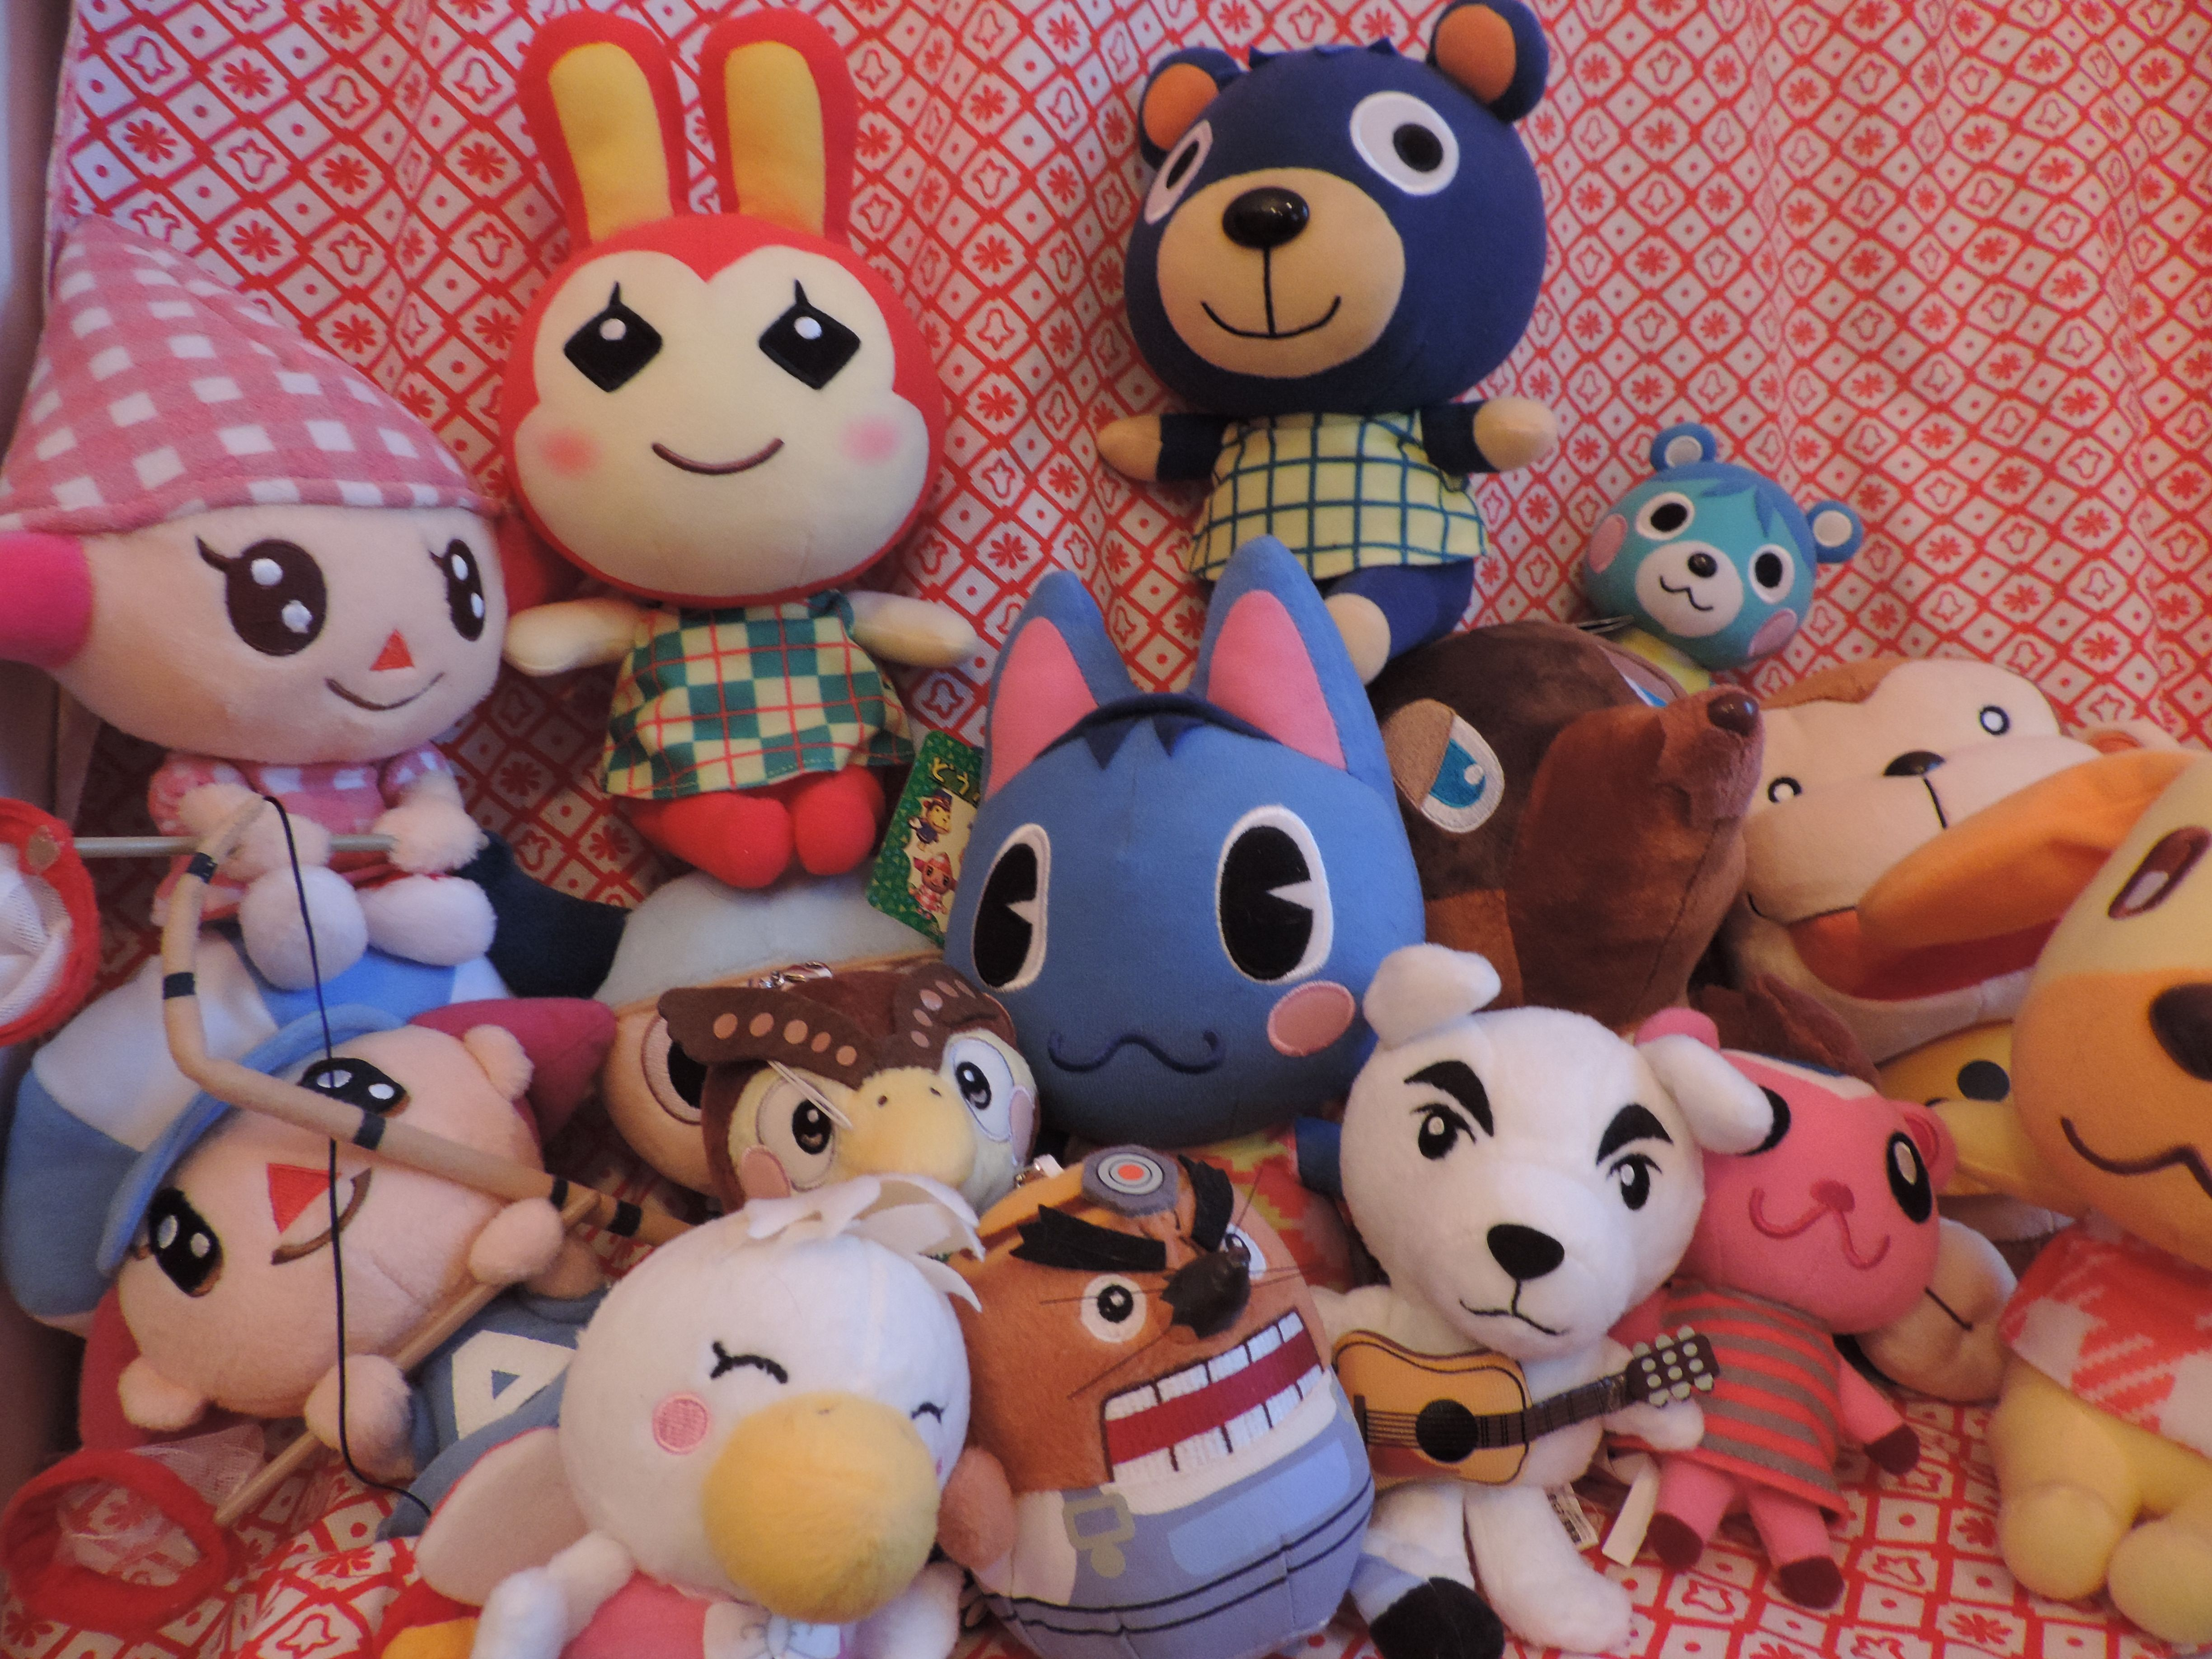 Animal Crossing Plush 2001 2007 Animal Crossing Wild World City